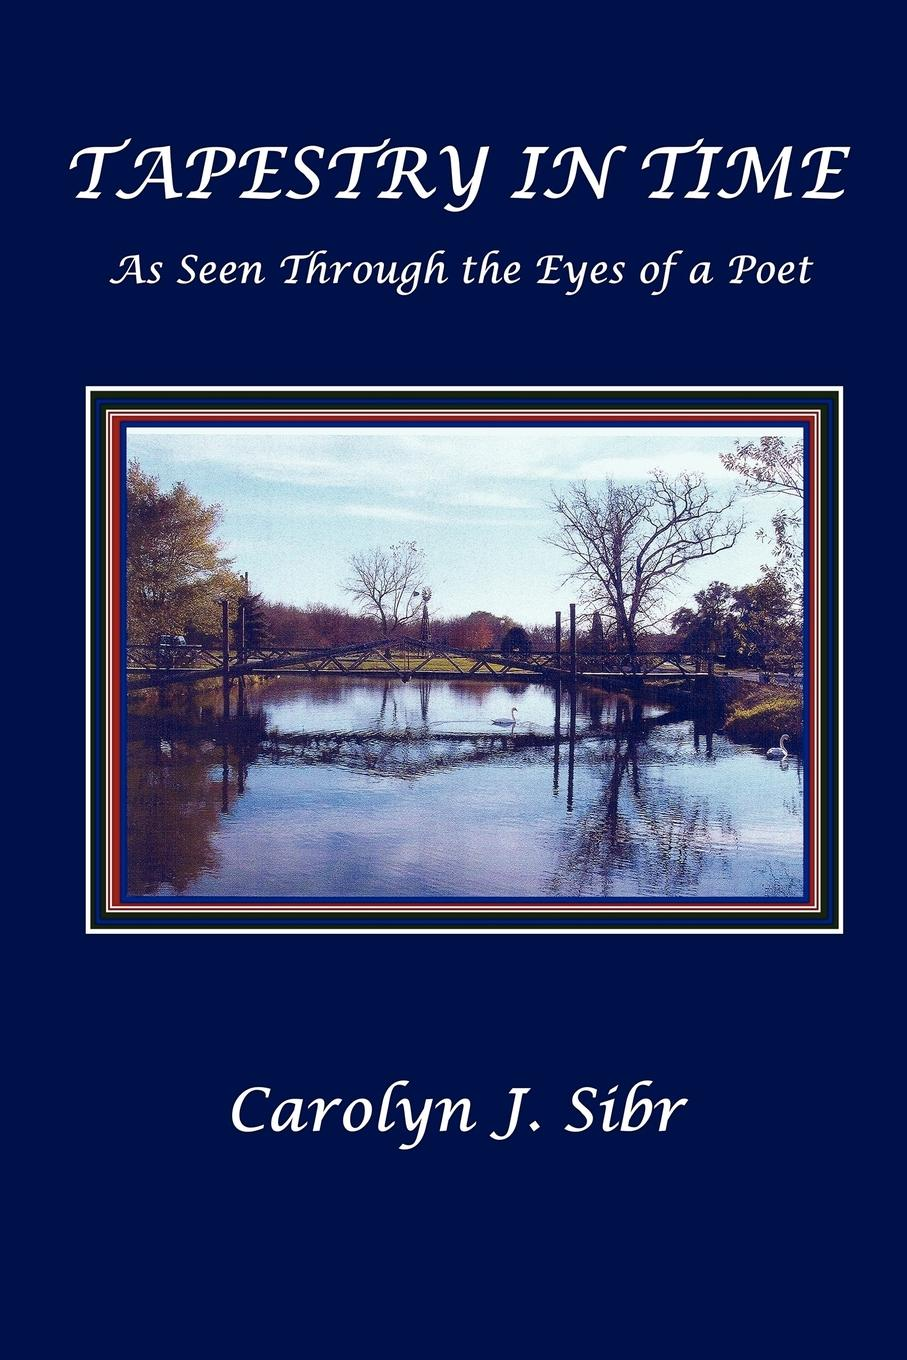 Carolyn J. Sibr TAPESTRY IN TIME As Seen Through the Eyes of a Poet catherine inglesby dickson through the eyes of a poet